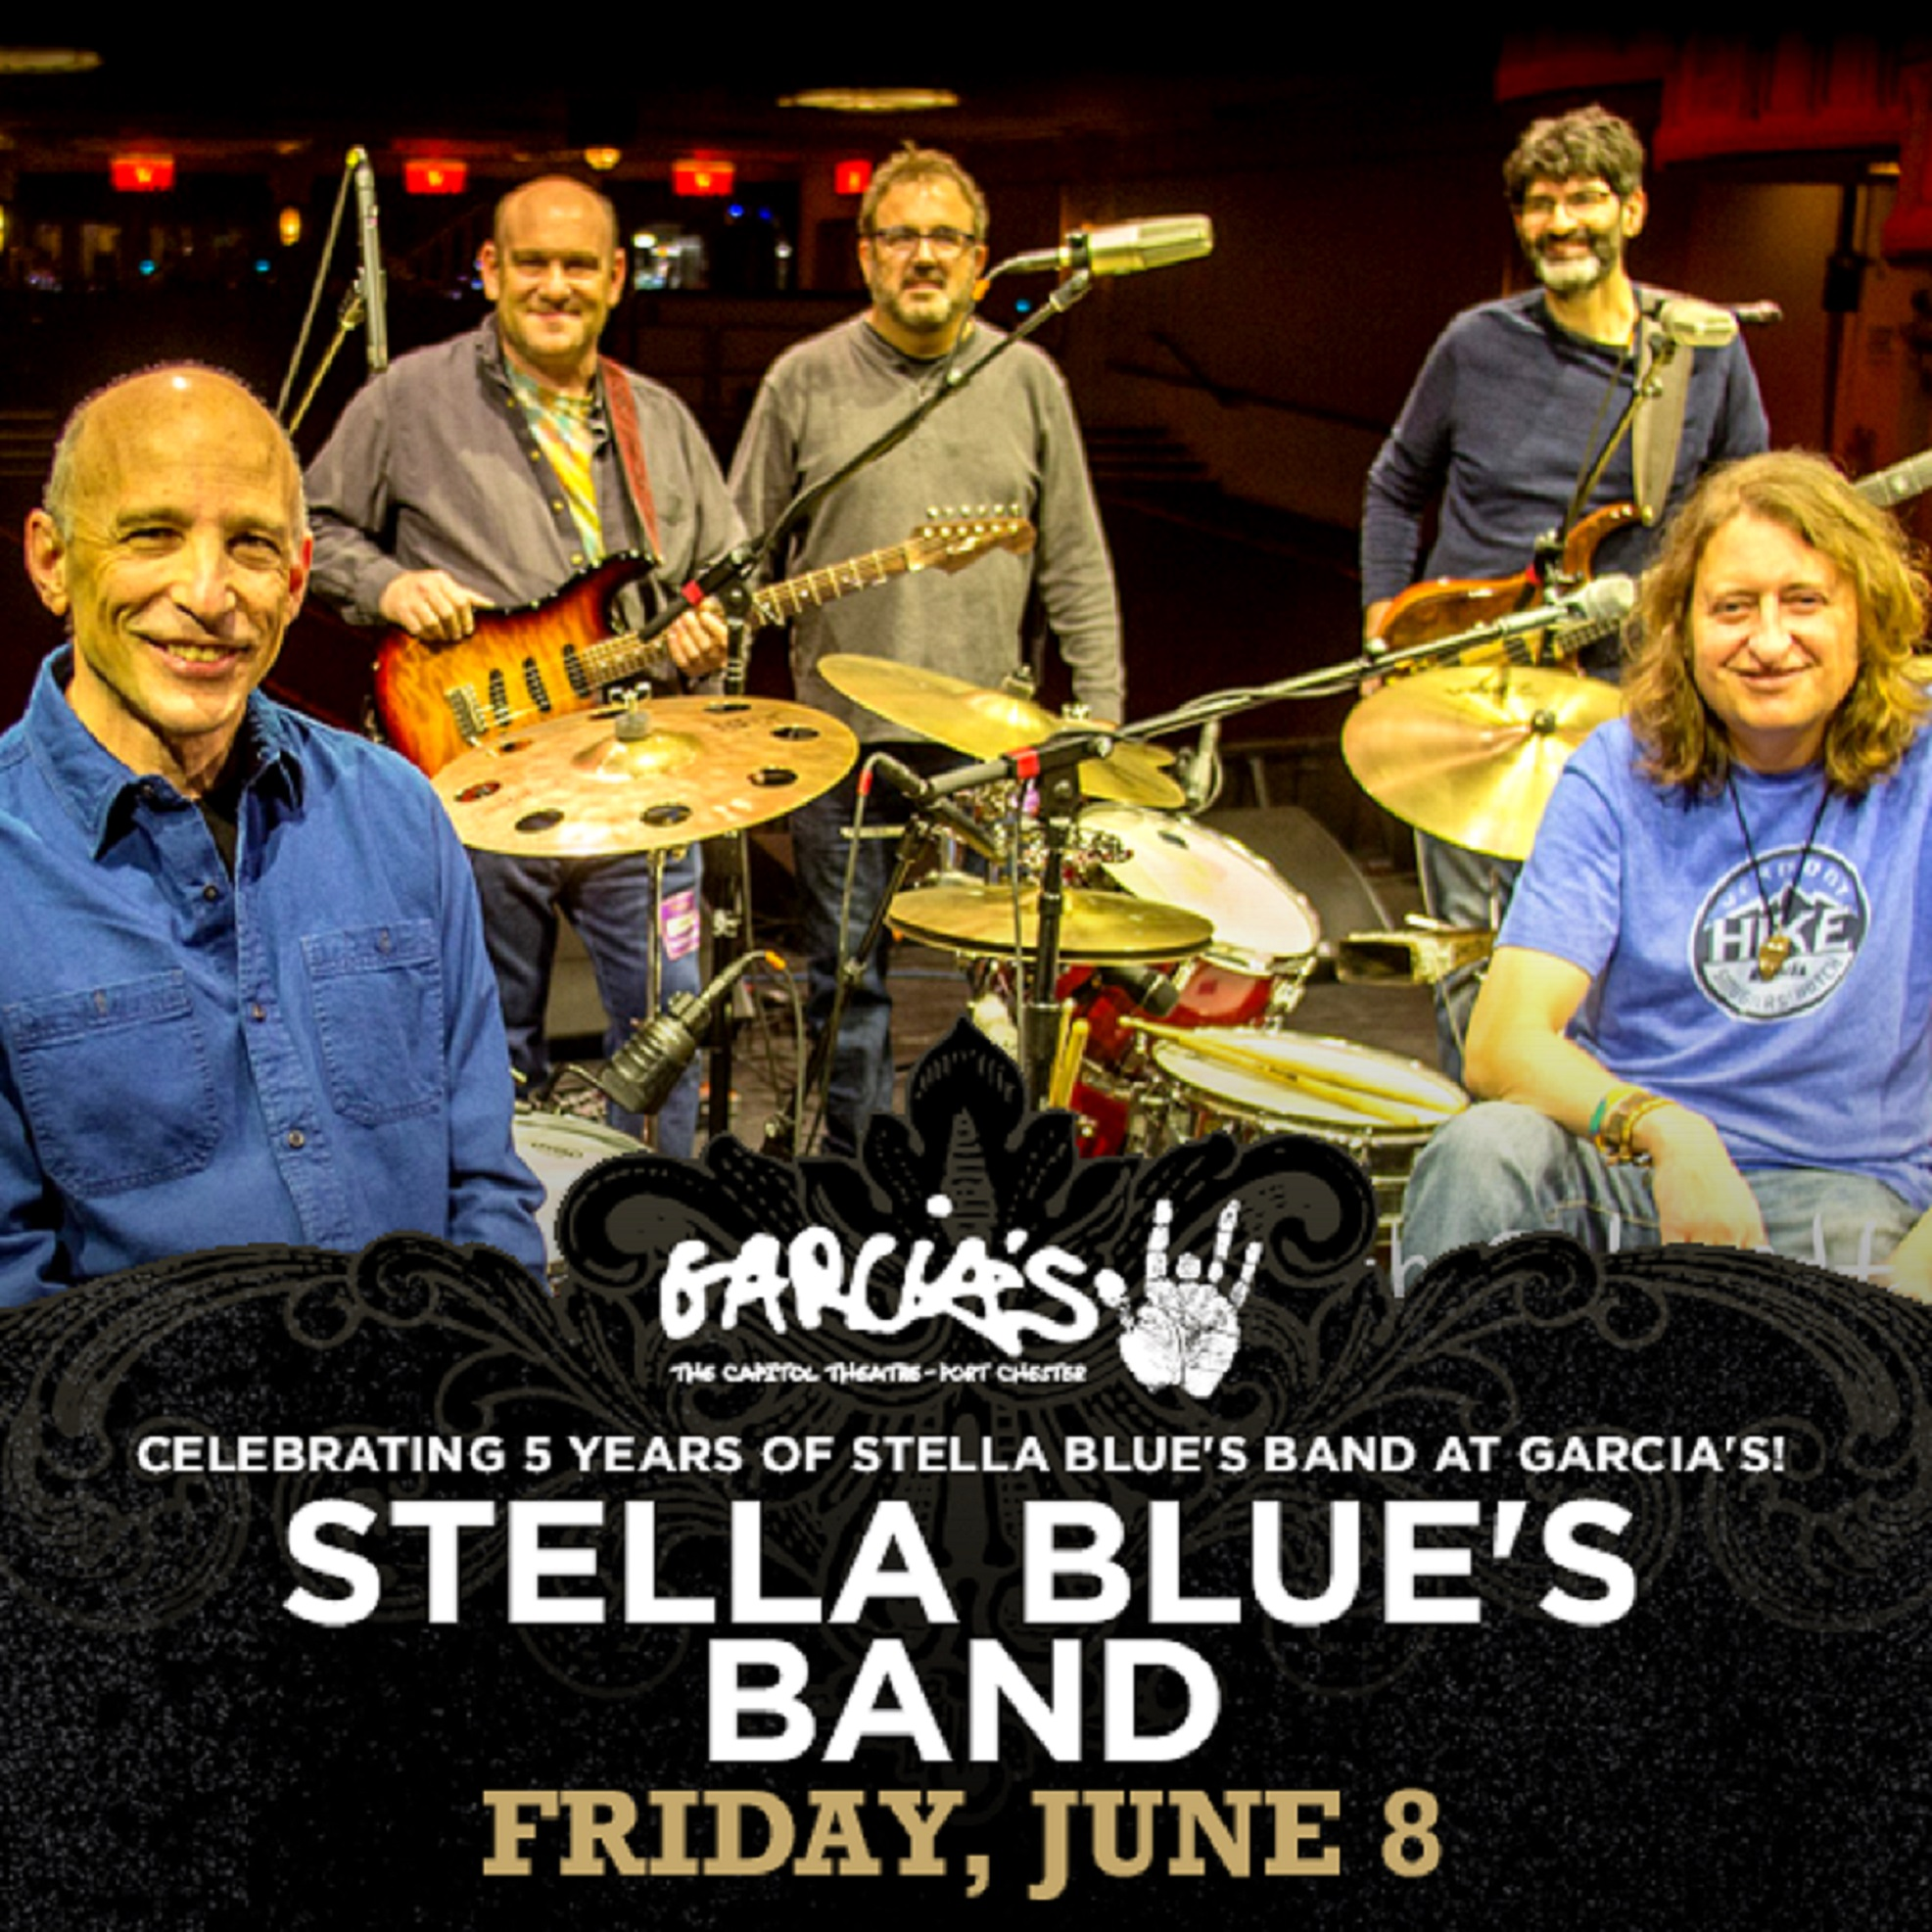 STELLA BLUE'S BAND CELEBRATES FIFTH  ANNIVERSARY AT GARCIA'S